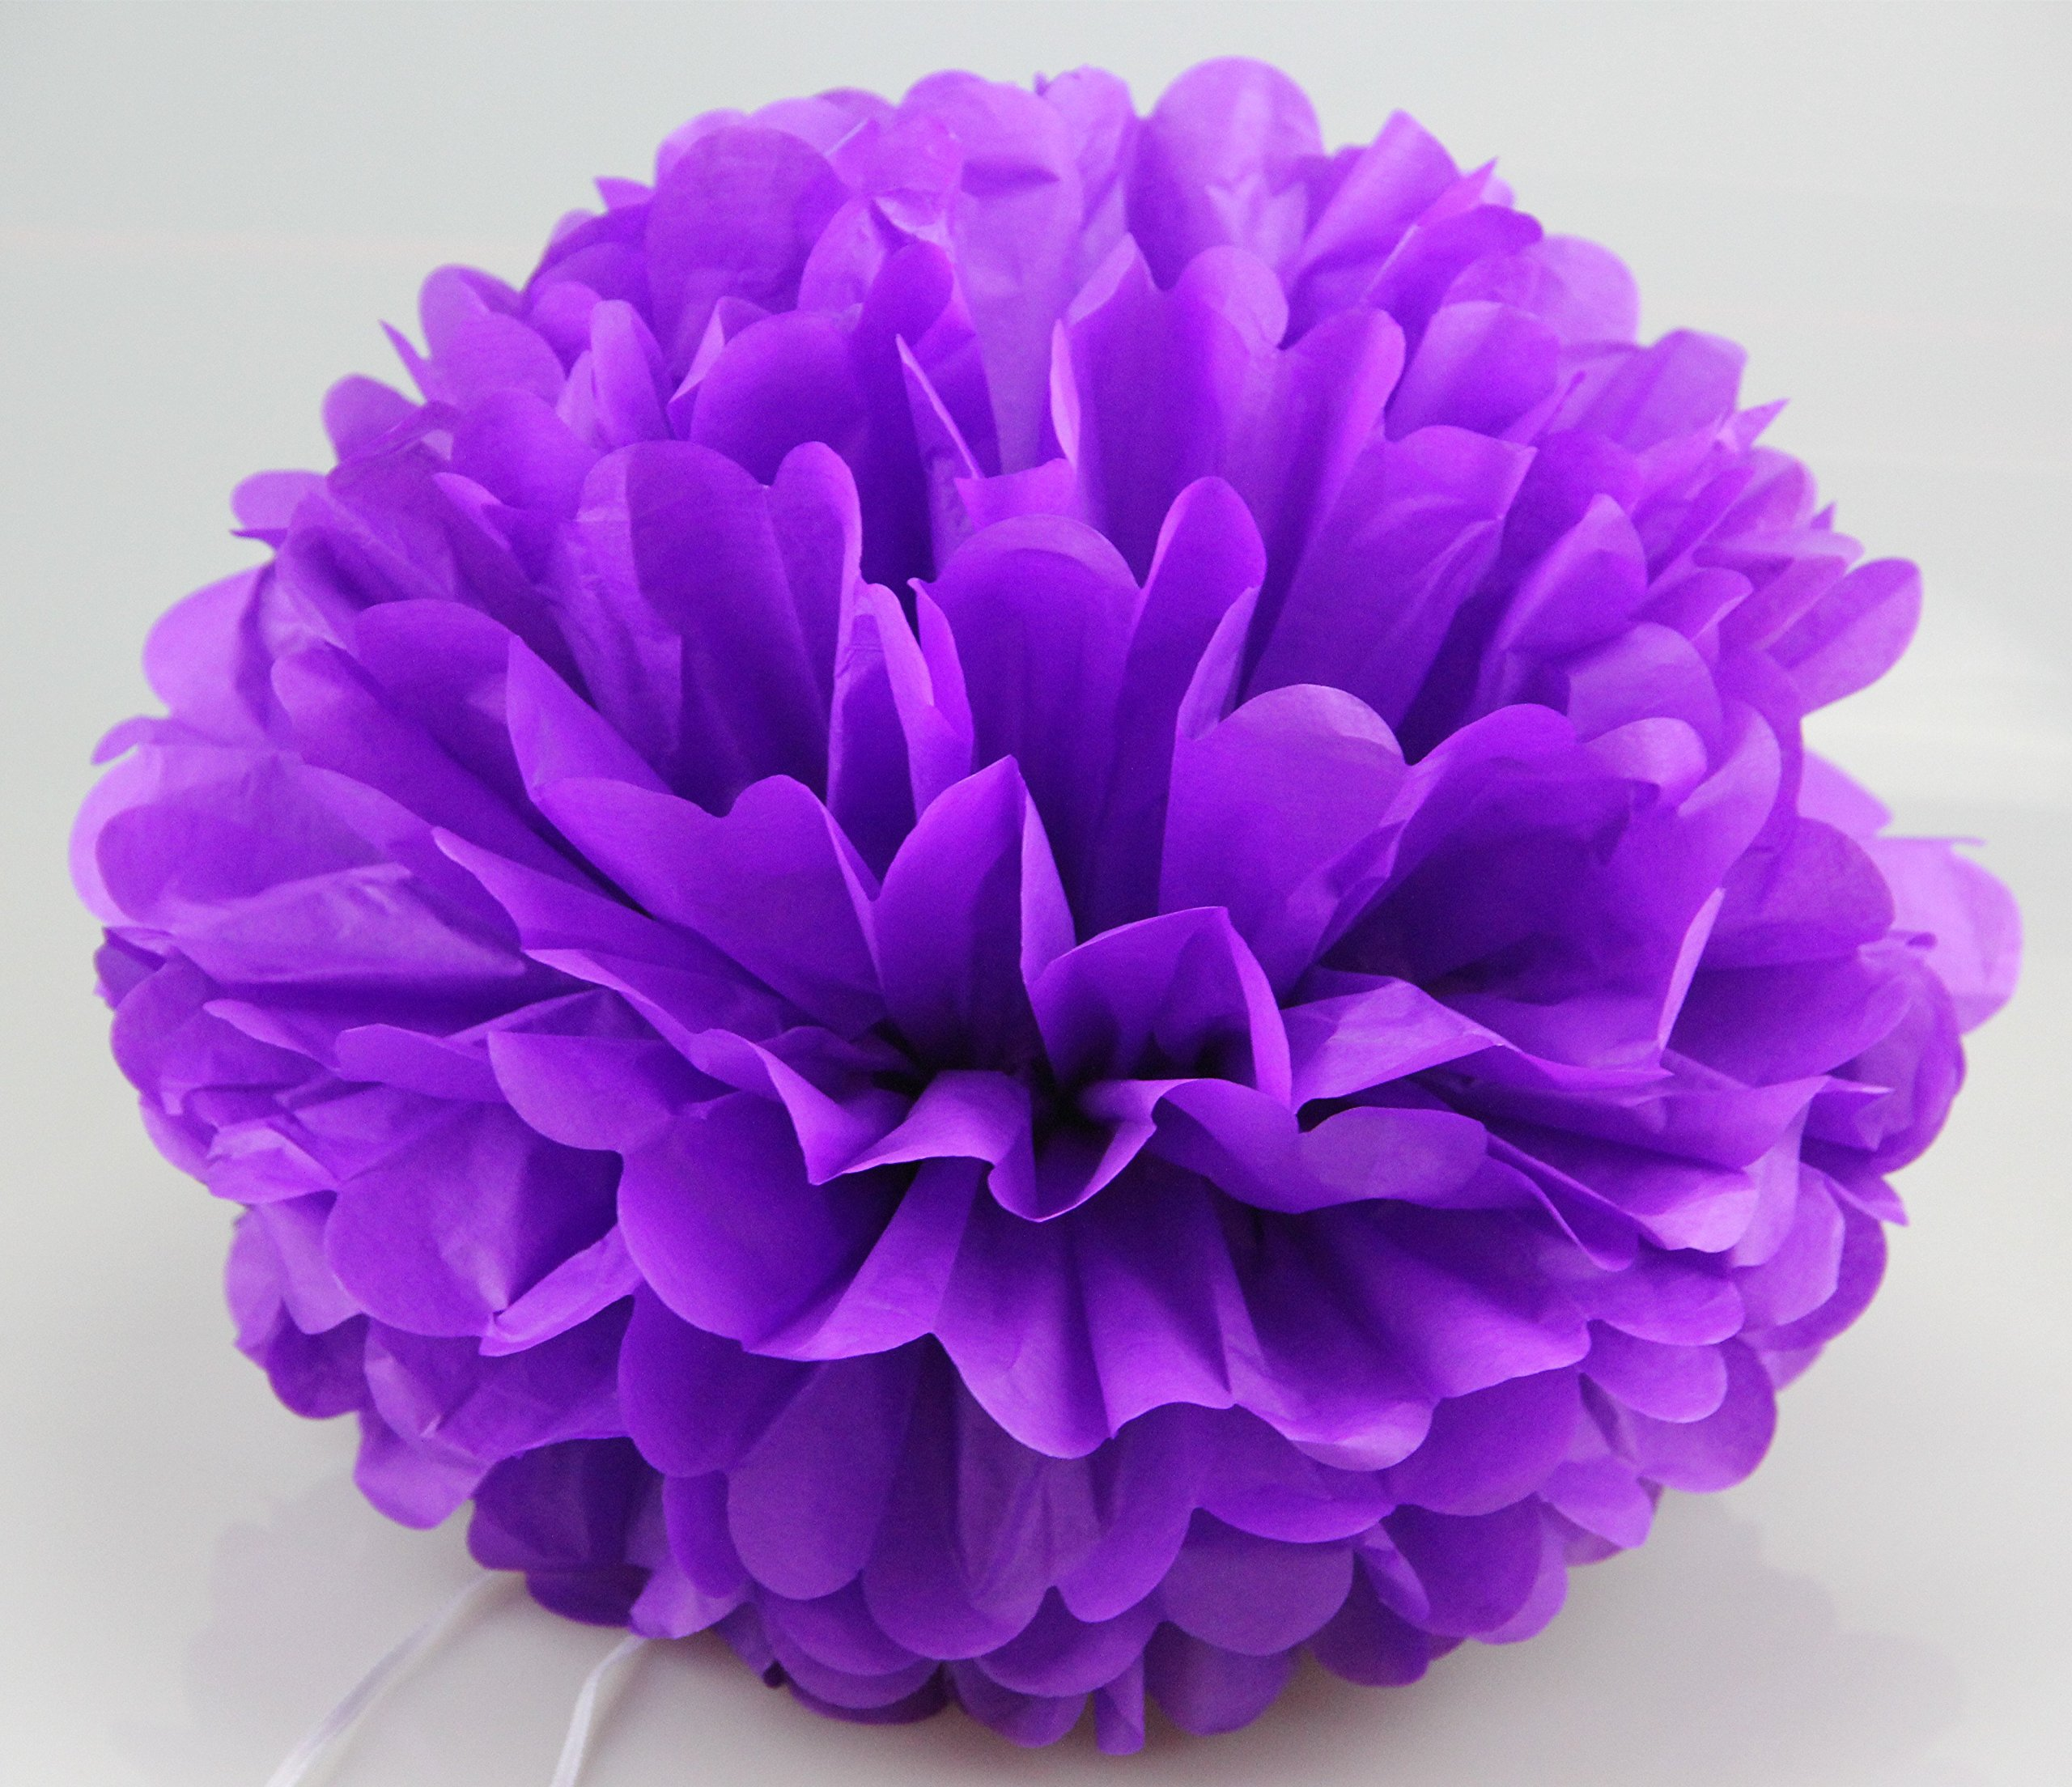 Jesipi Lavender Purple Lilac Tissue Paper Pompoms Wedding Decoration Hanging Party Supplies in 3'' 4'' 6'' 8'' 10'' (Pack of 12) (10'')